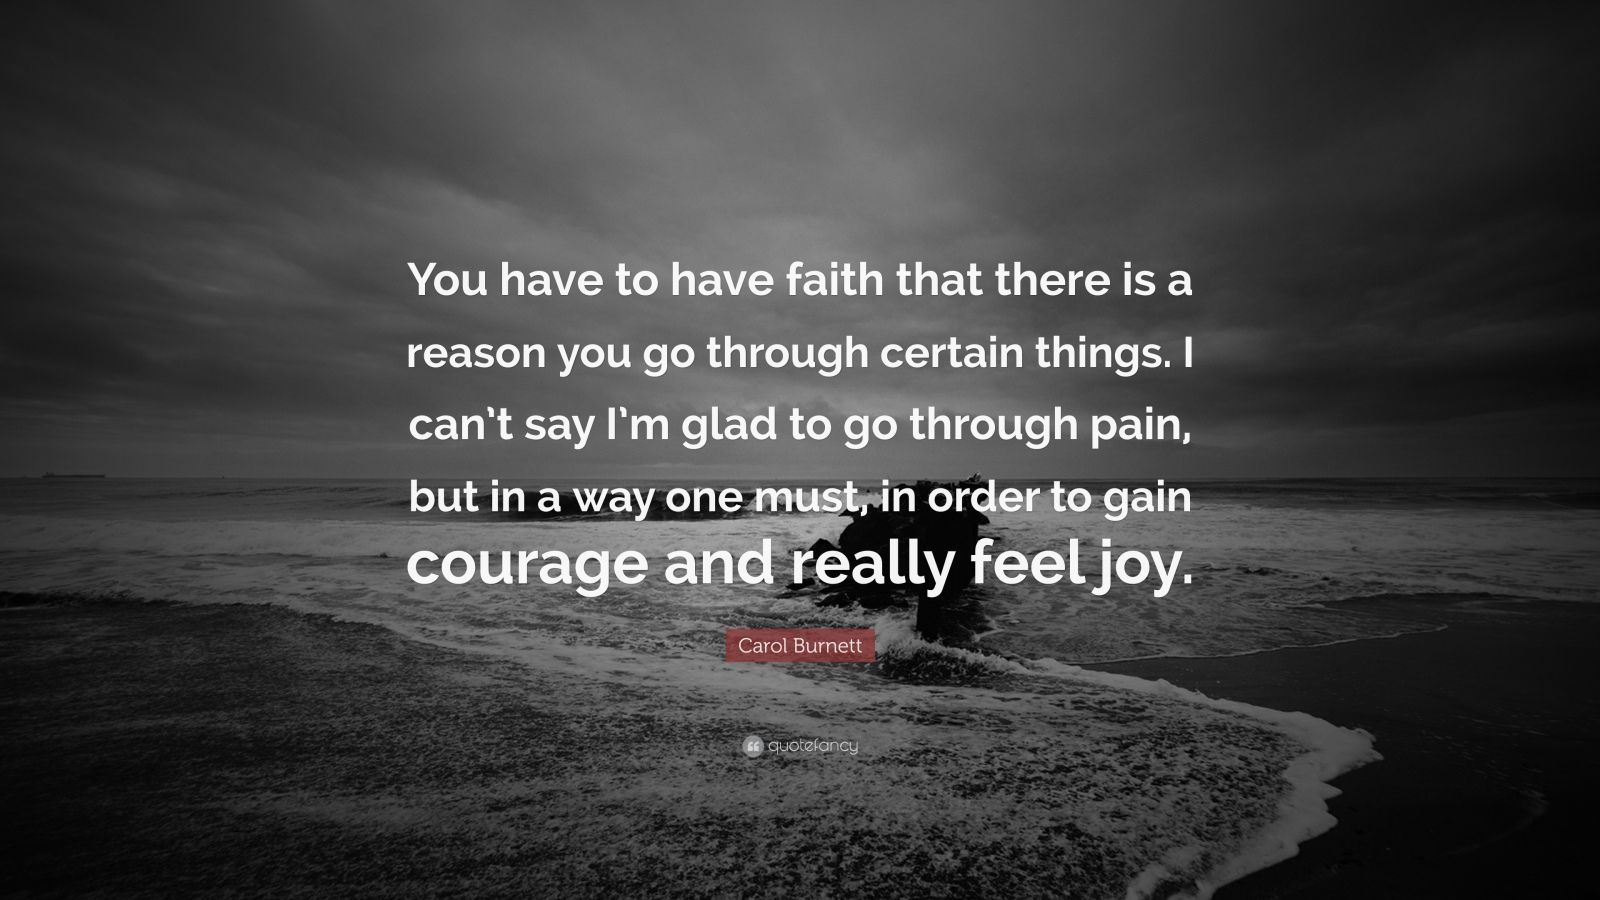 """Carol Burnett Quote: """"You have to have faith that there is a reason you go through certain things. I can't say I'm glad to go through pain, but in a way one must, in order to gain courage and really feel joy."""""""